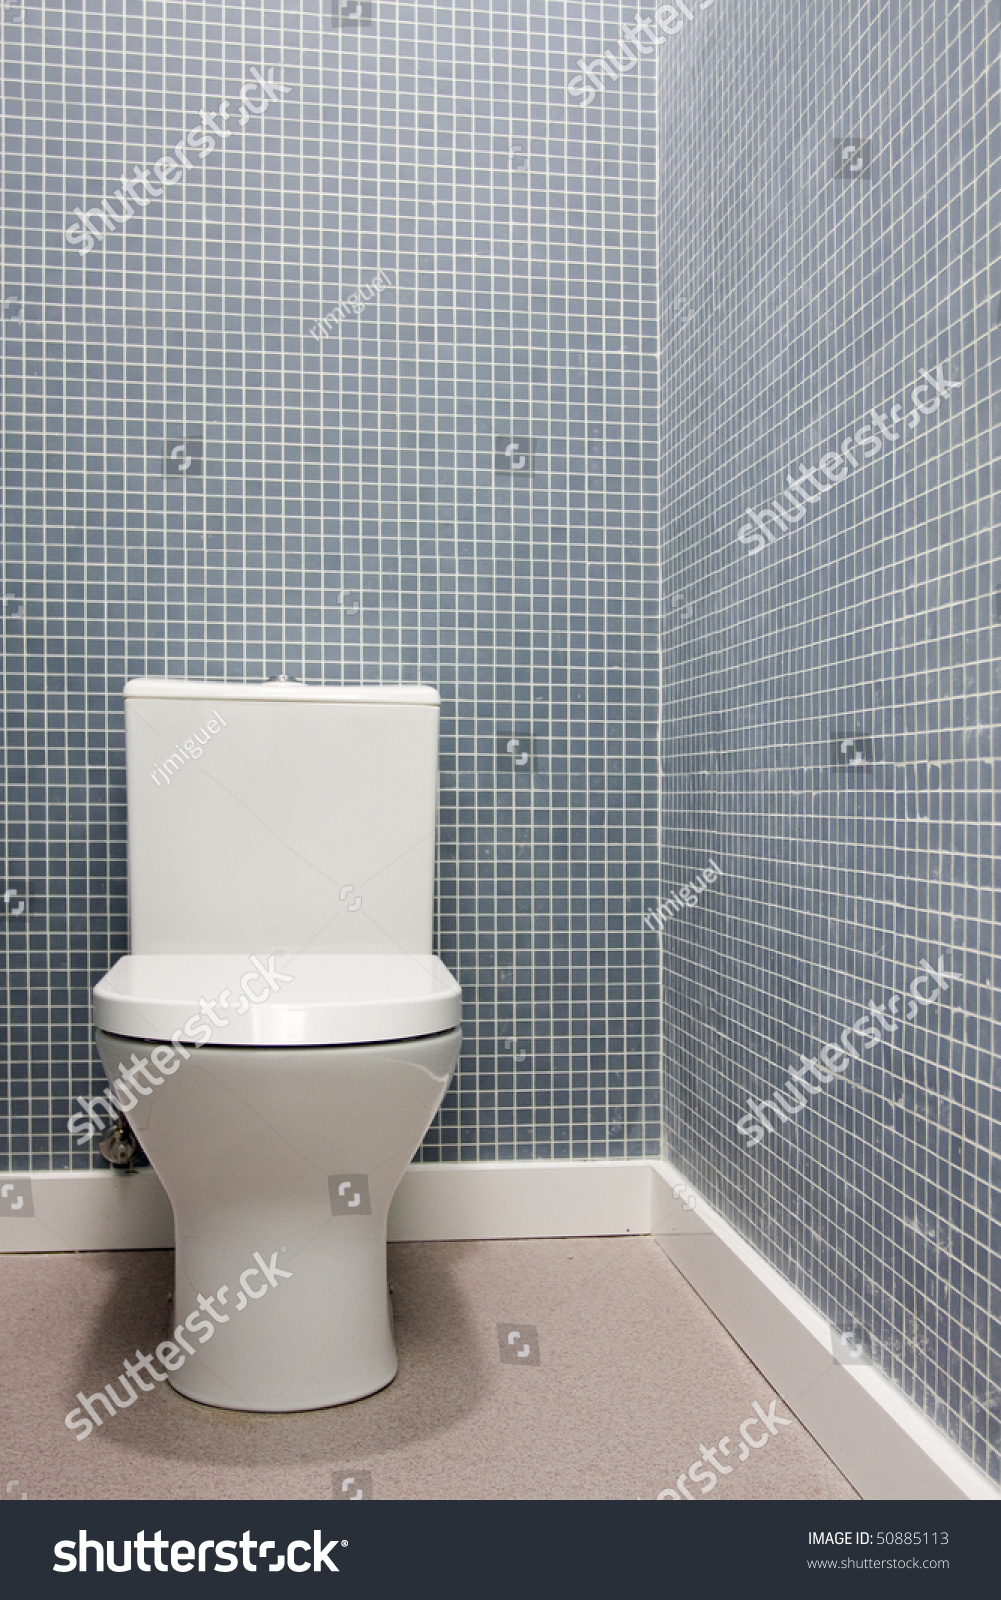 Simple Clean White Toilet Bathroom Stock Photo (Edit Now) 50885113 ...